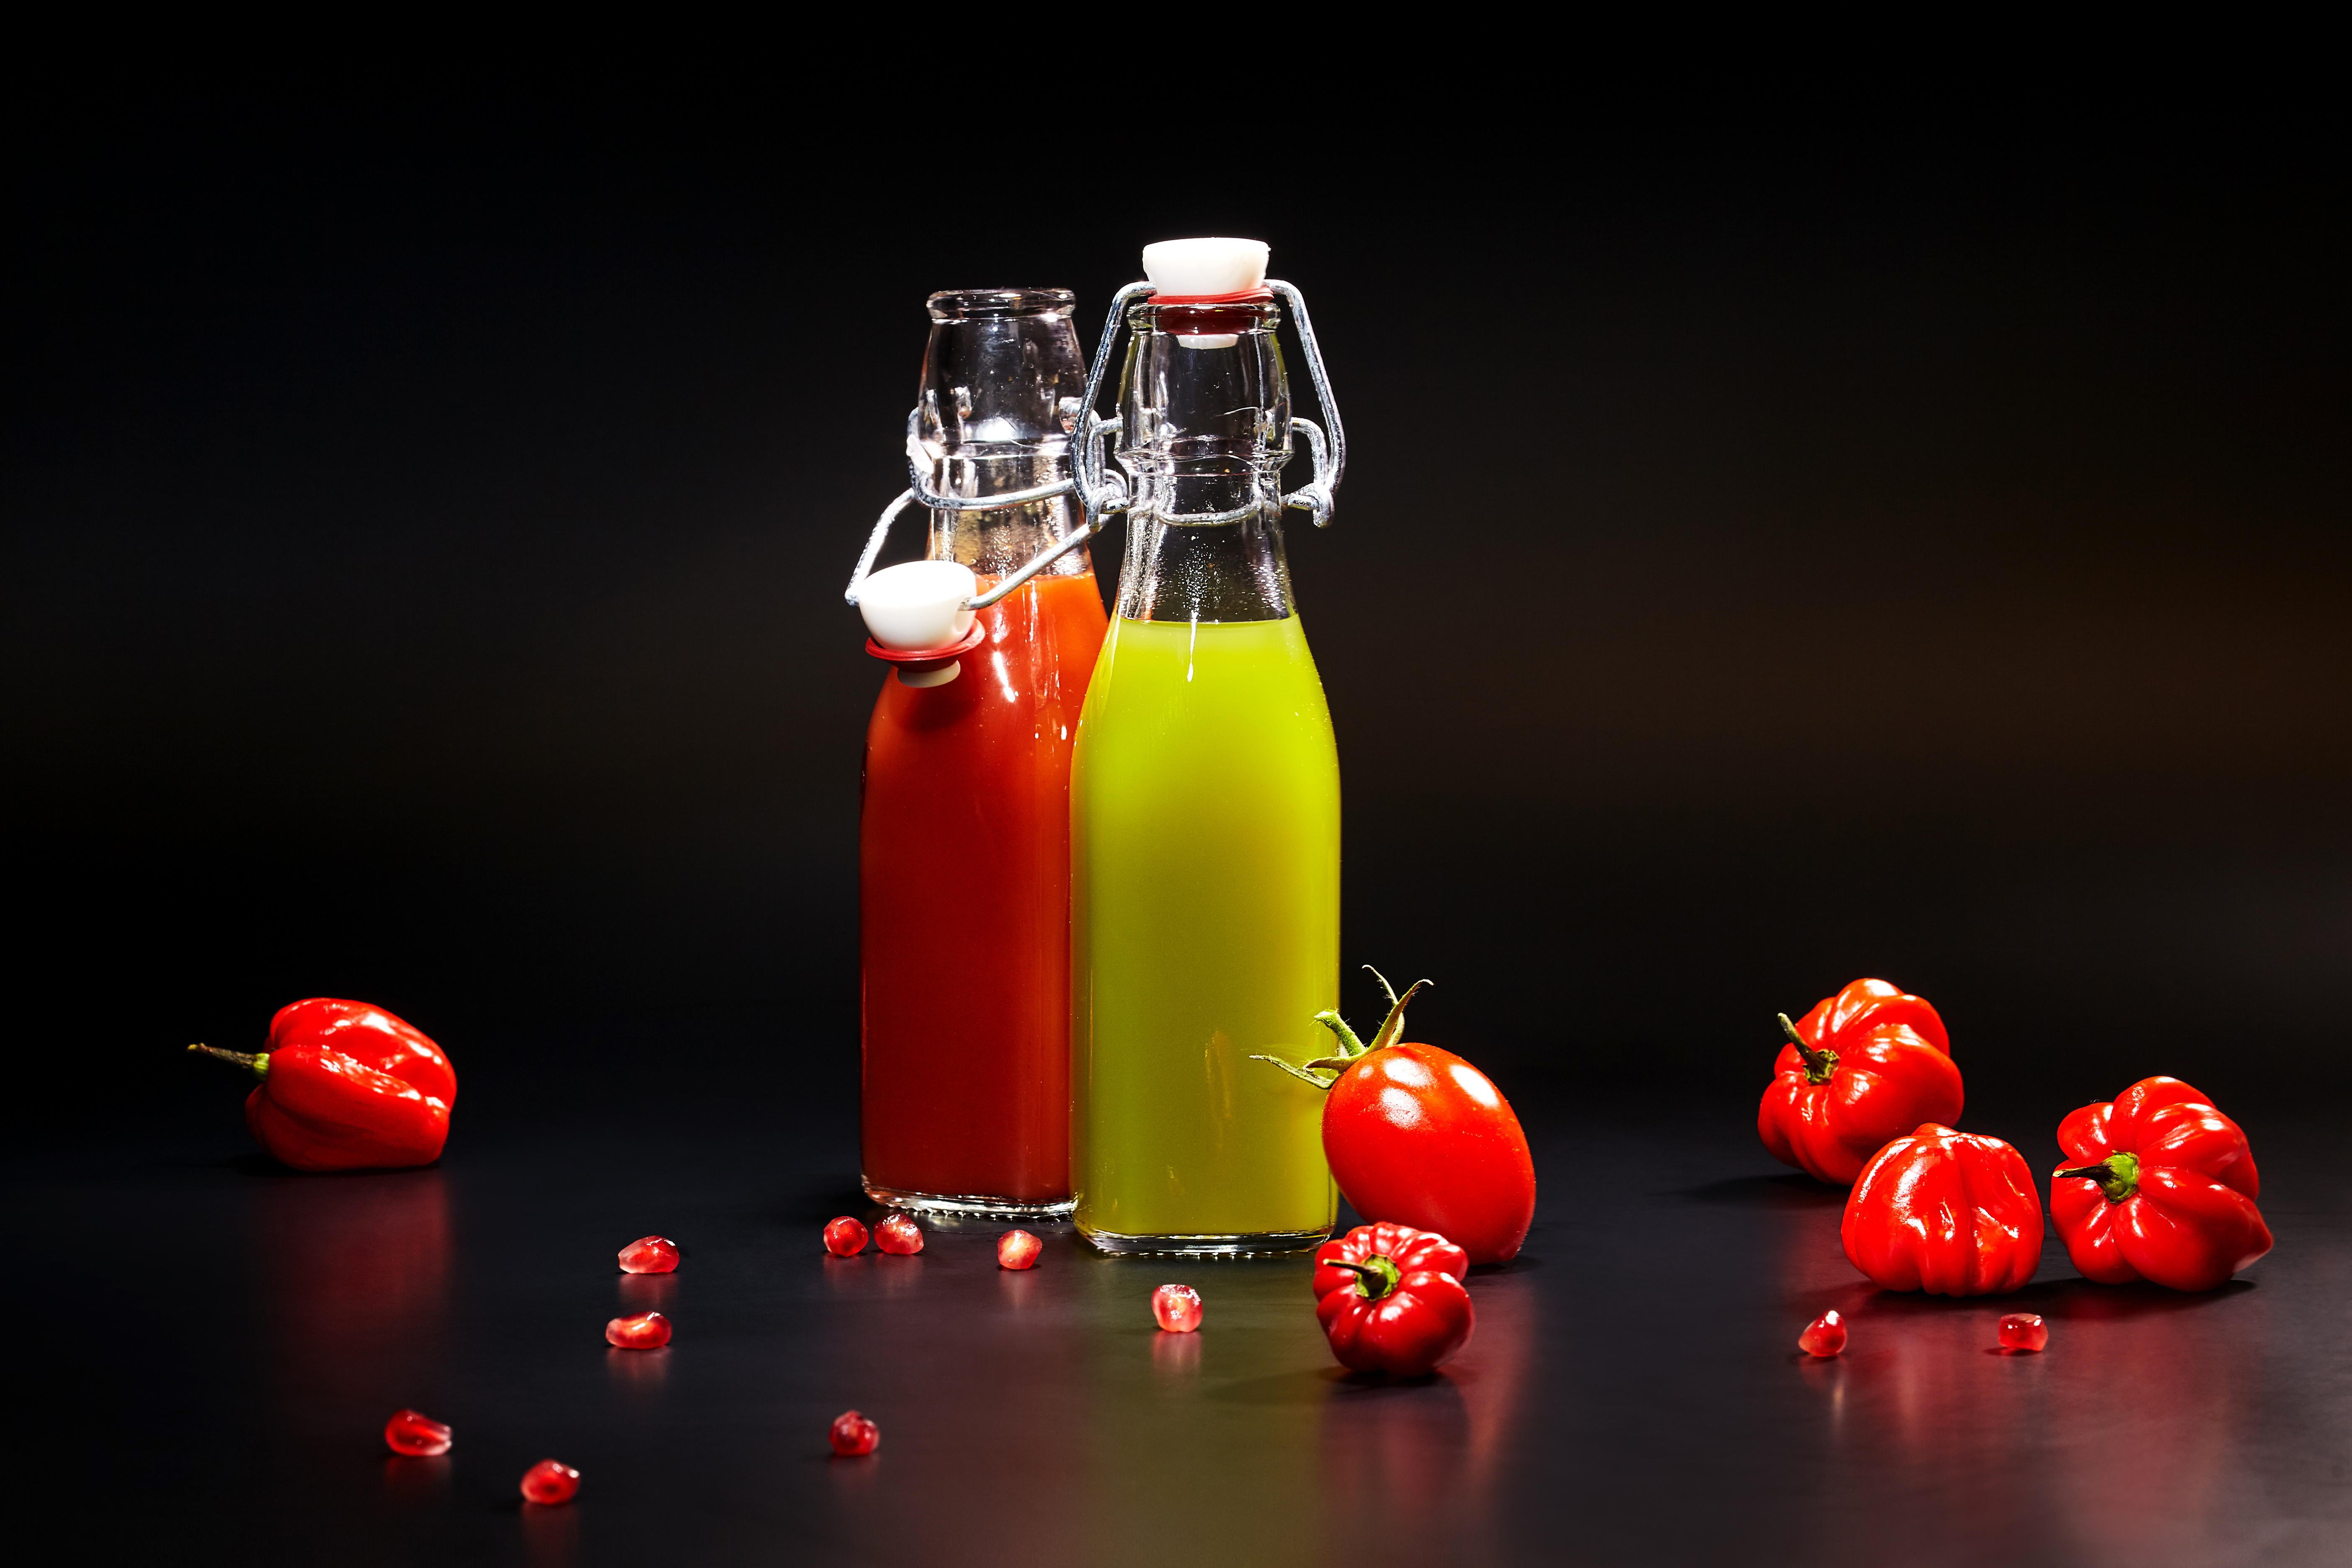 Image 2 Juice Tomatoes Food Bottle Bell pepper Colored background 5616x3744 Two bottles